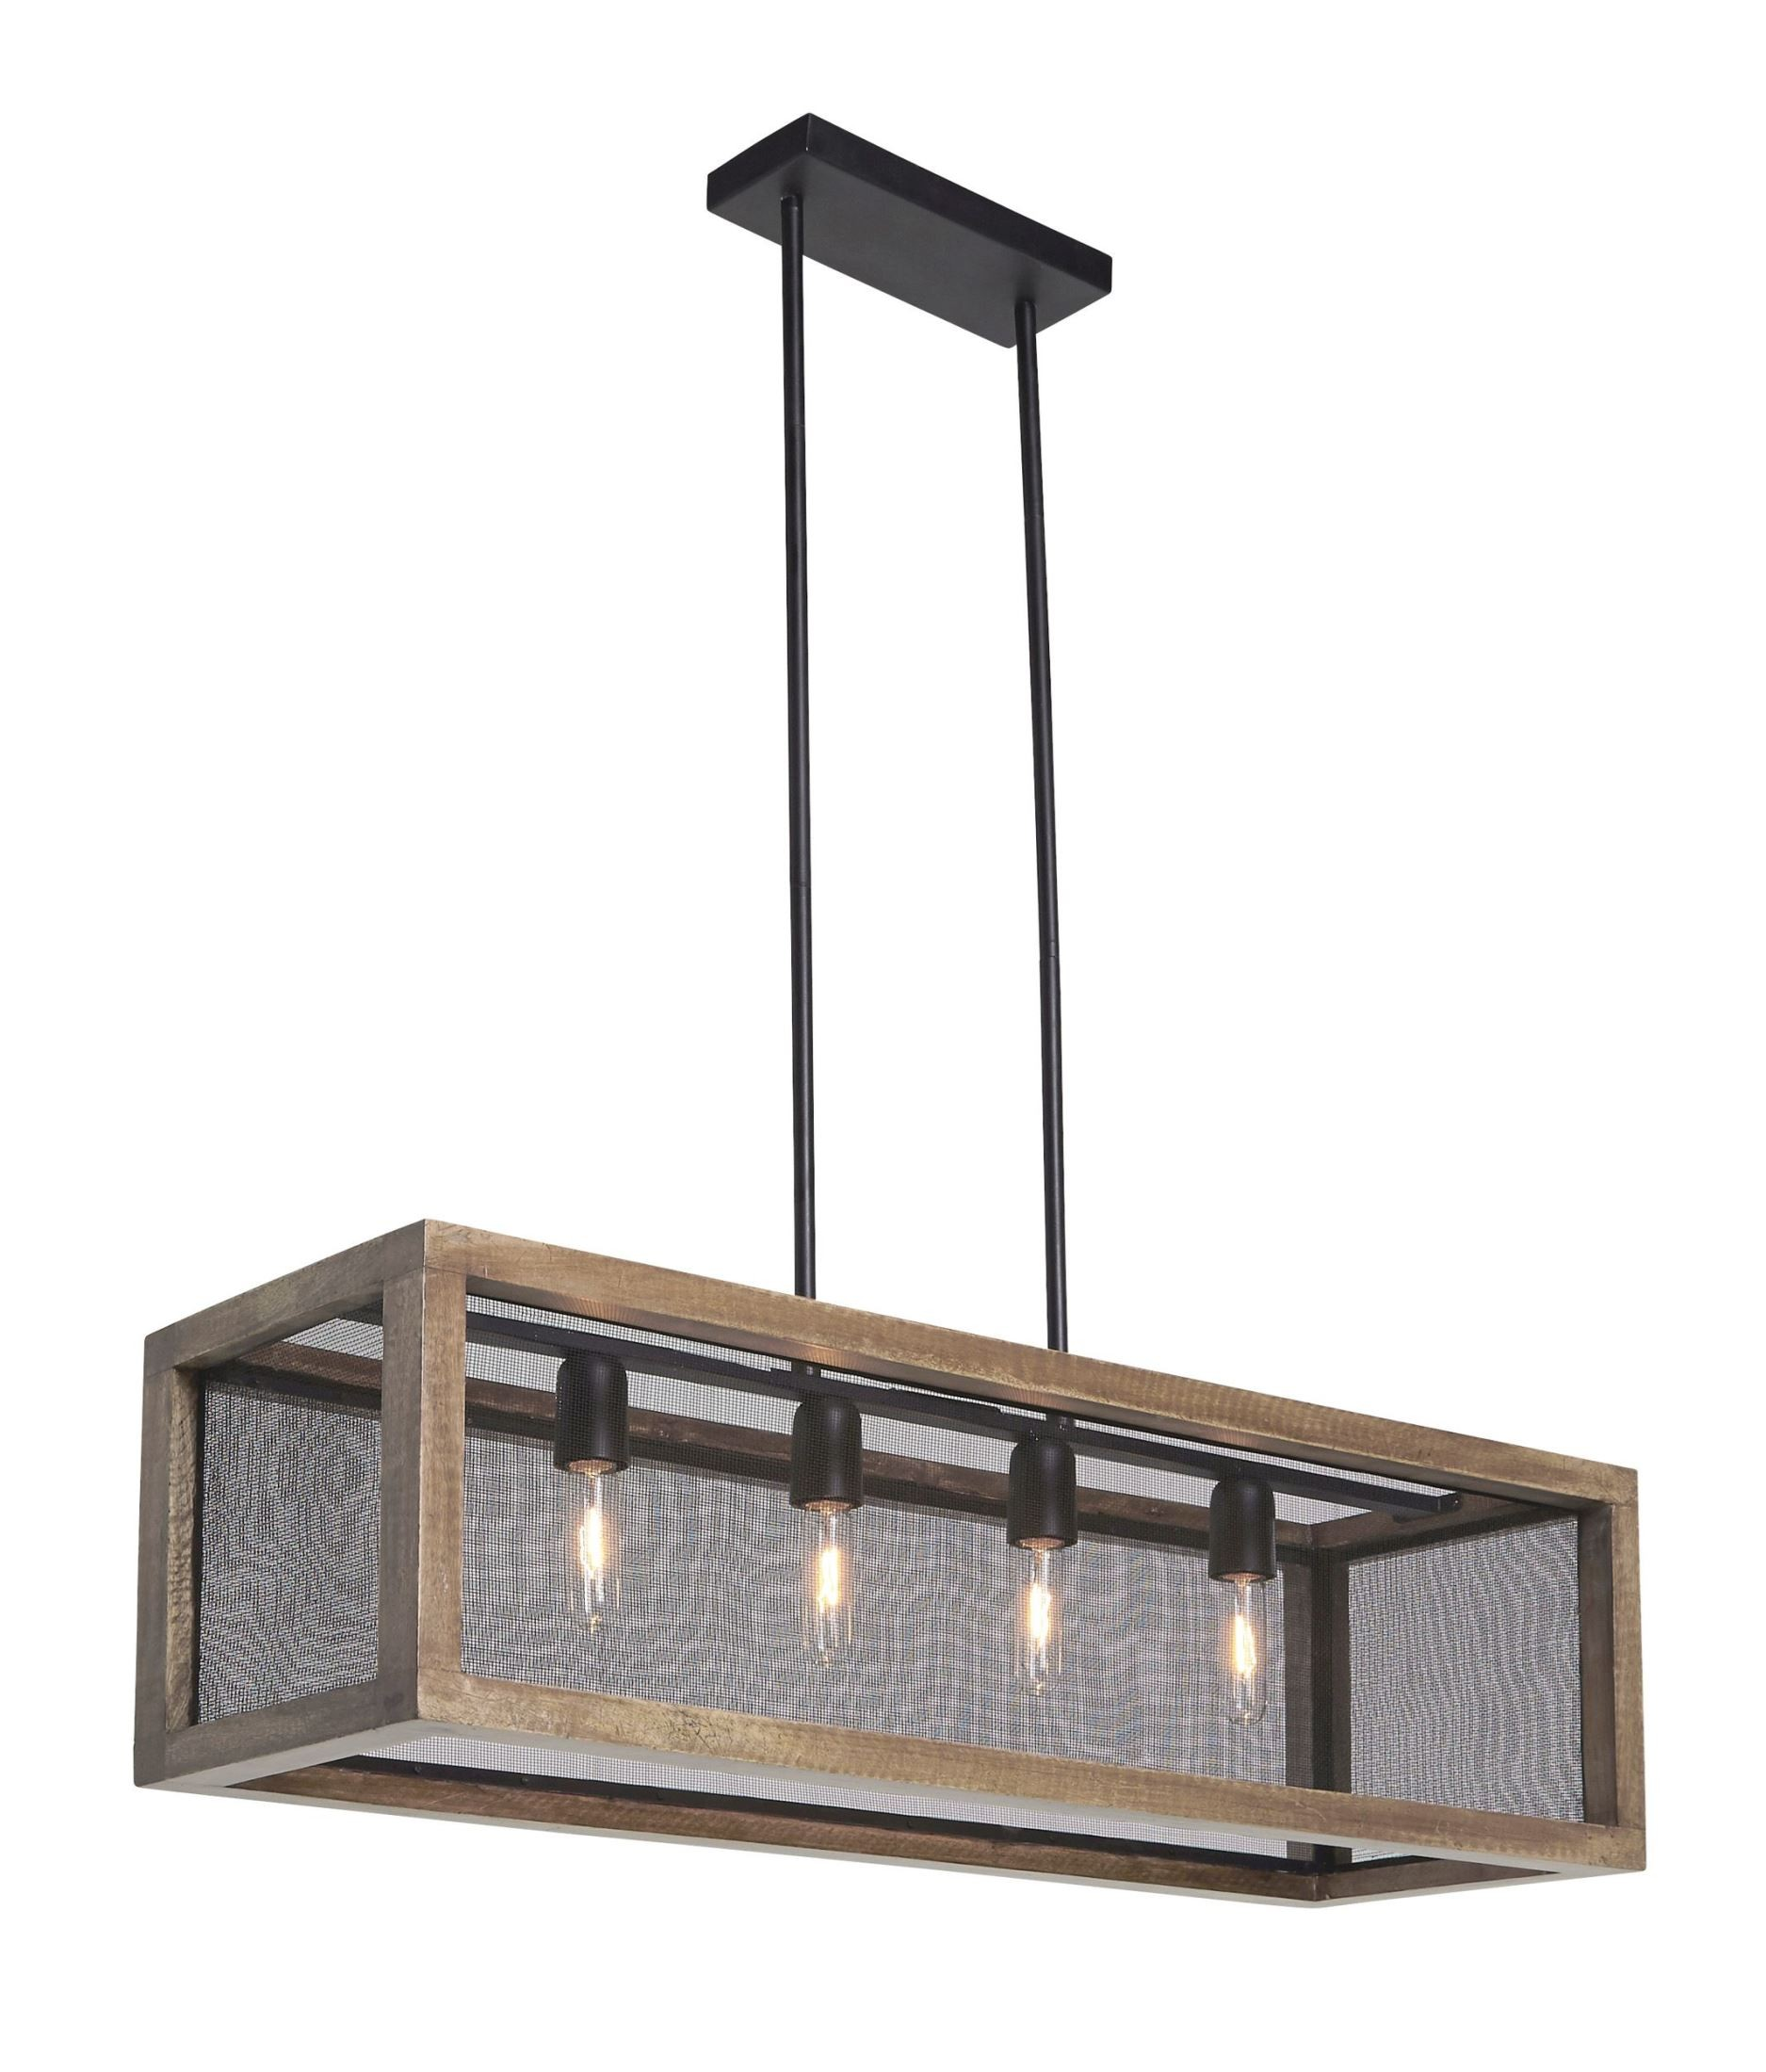 Home Decorators Collection Review Jodene Brown And Black Wood Pendant Light From Ashley